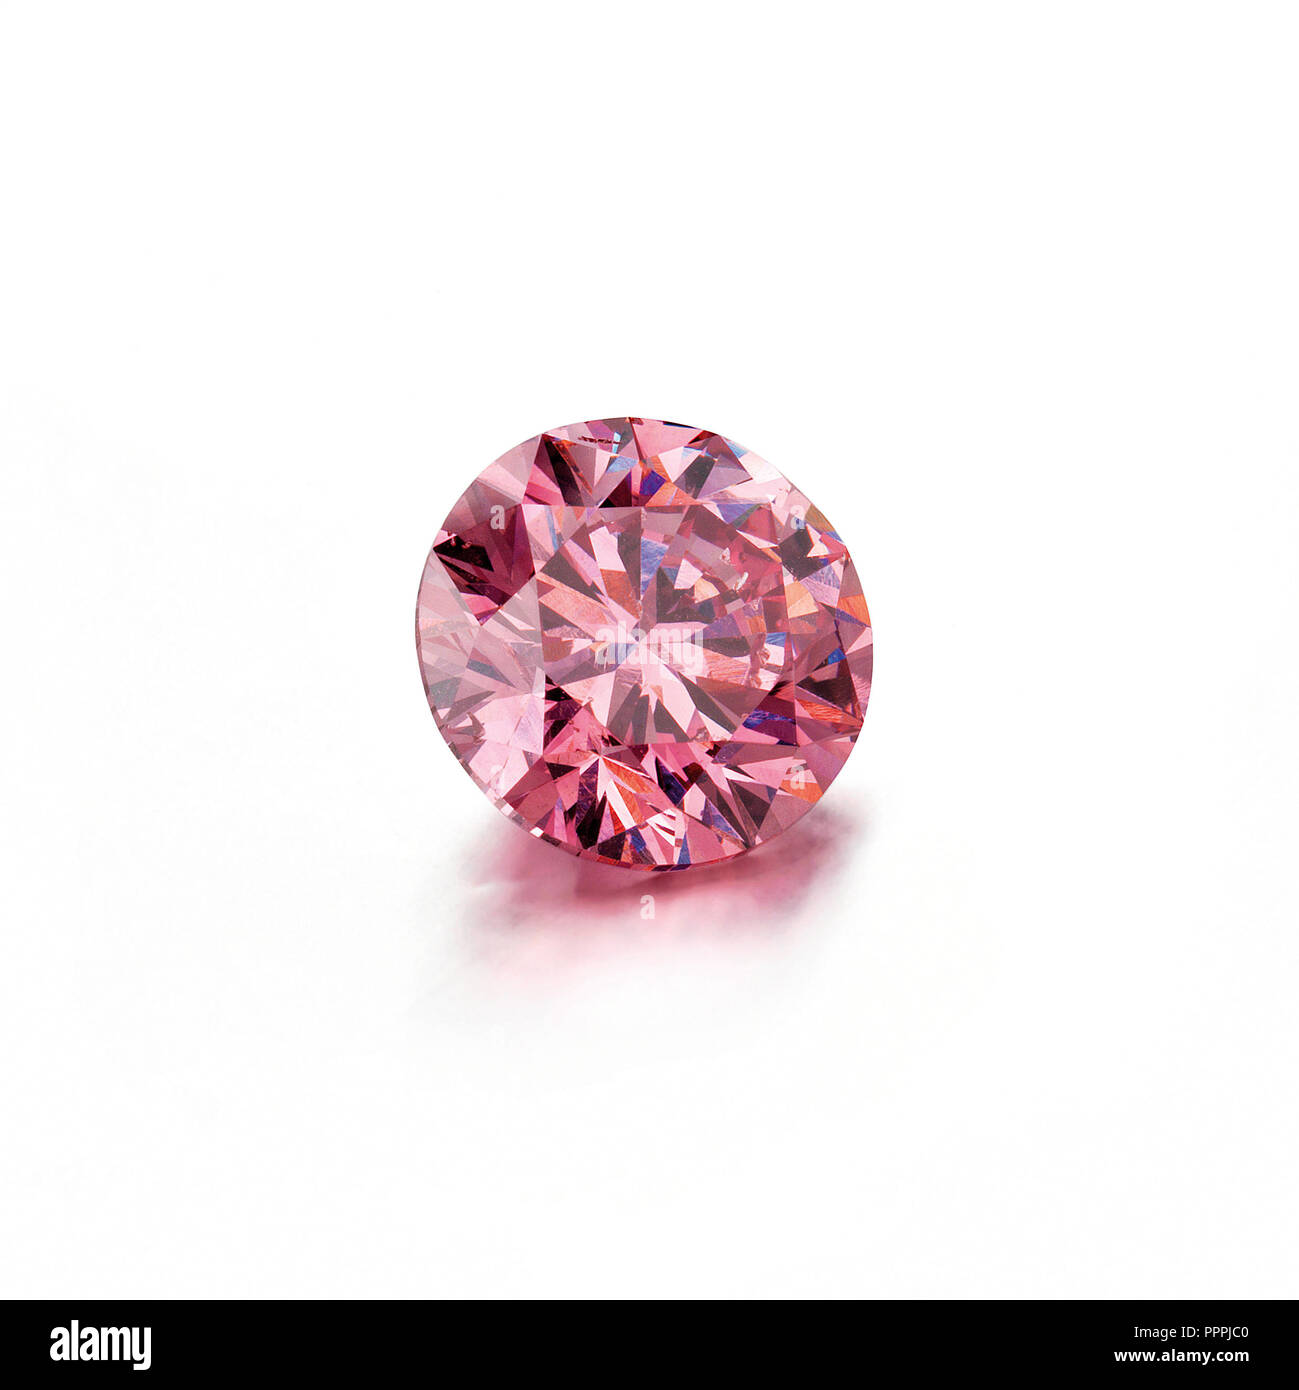 Diamond Rock Cut Out Stock Images & Pictures - Alamy